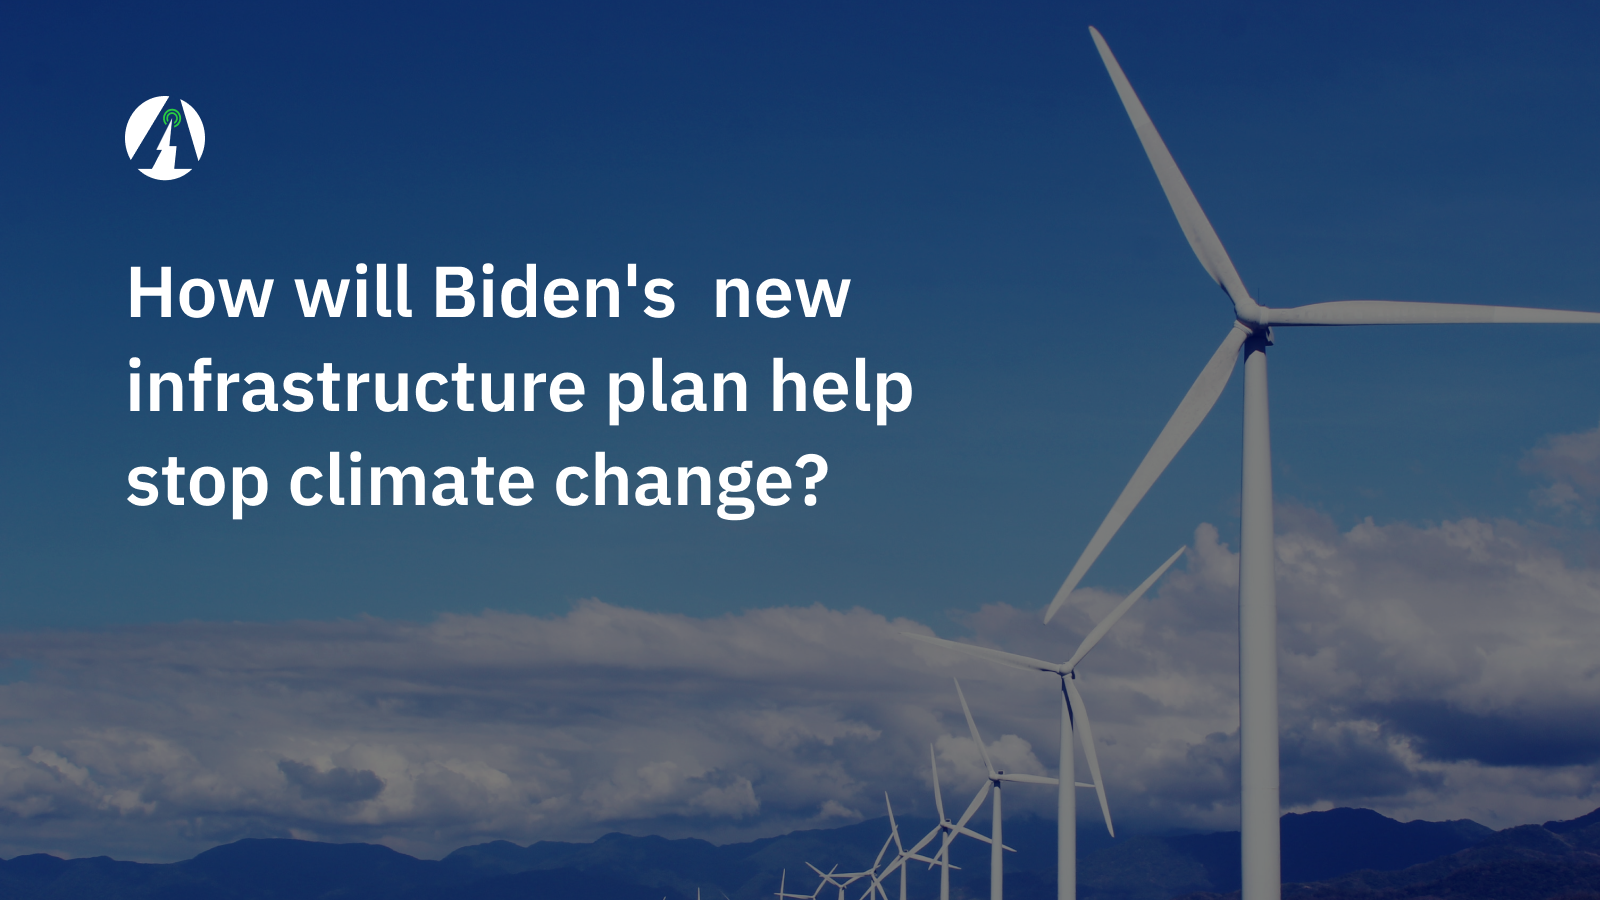 How will Biden's new infrastructure plan stop climate change?